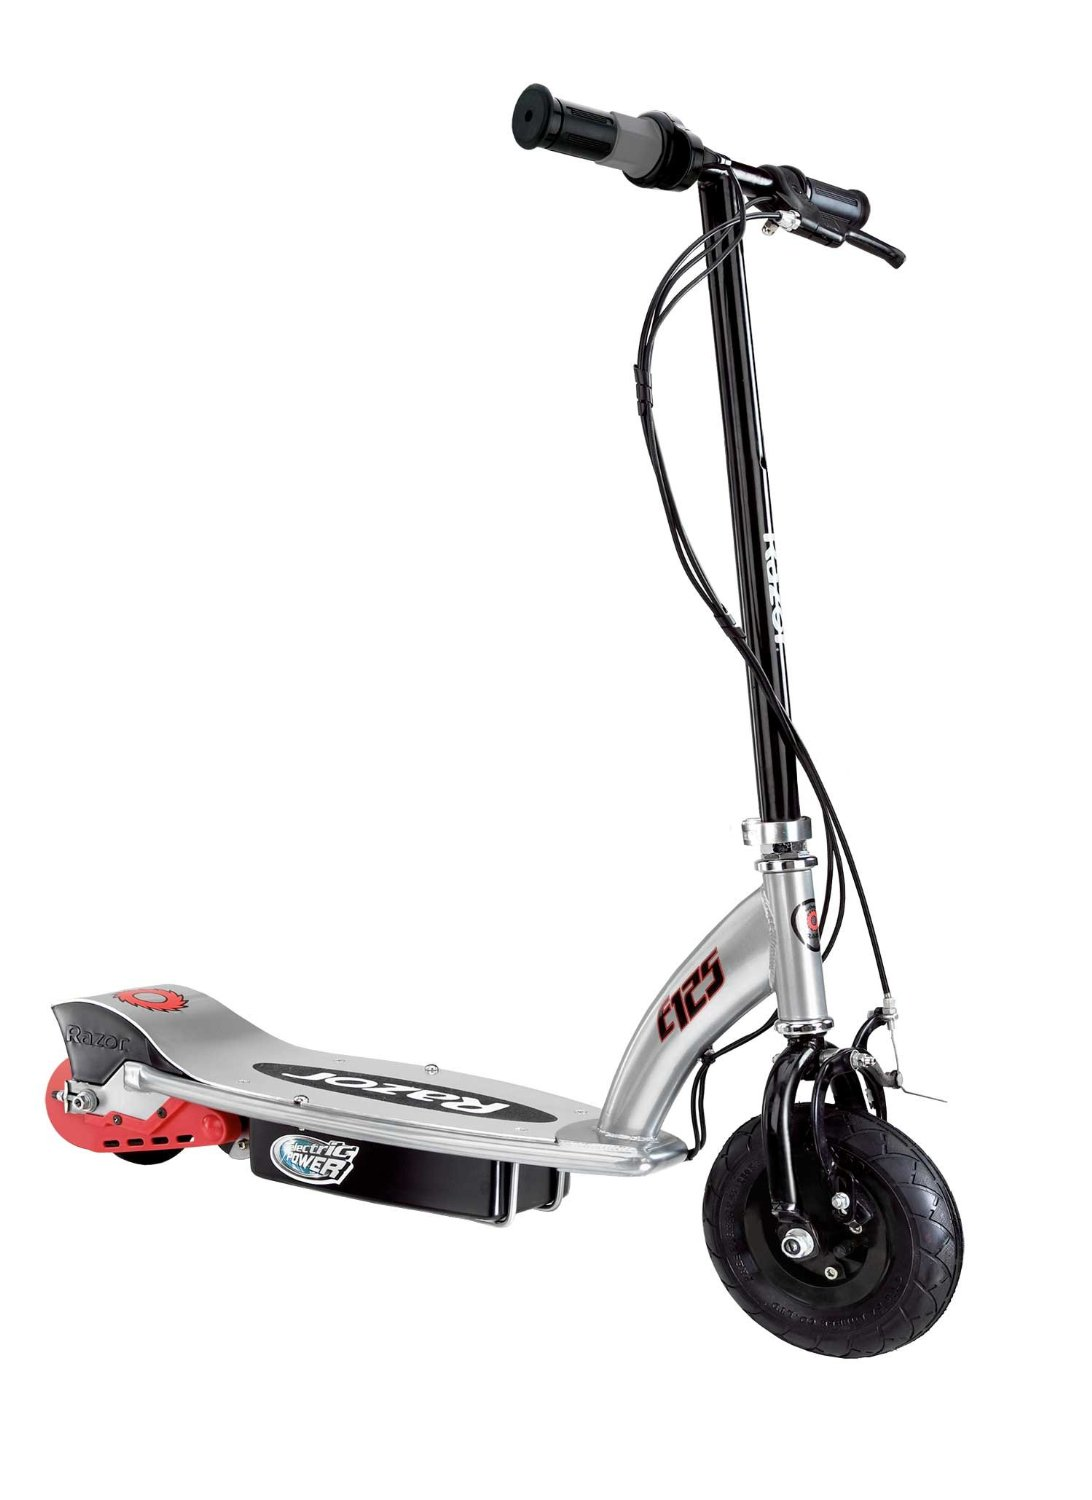 The Razor E125 Electric Scooter Tested For You